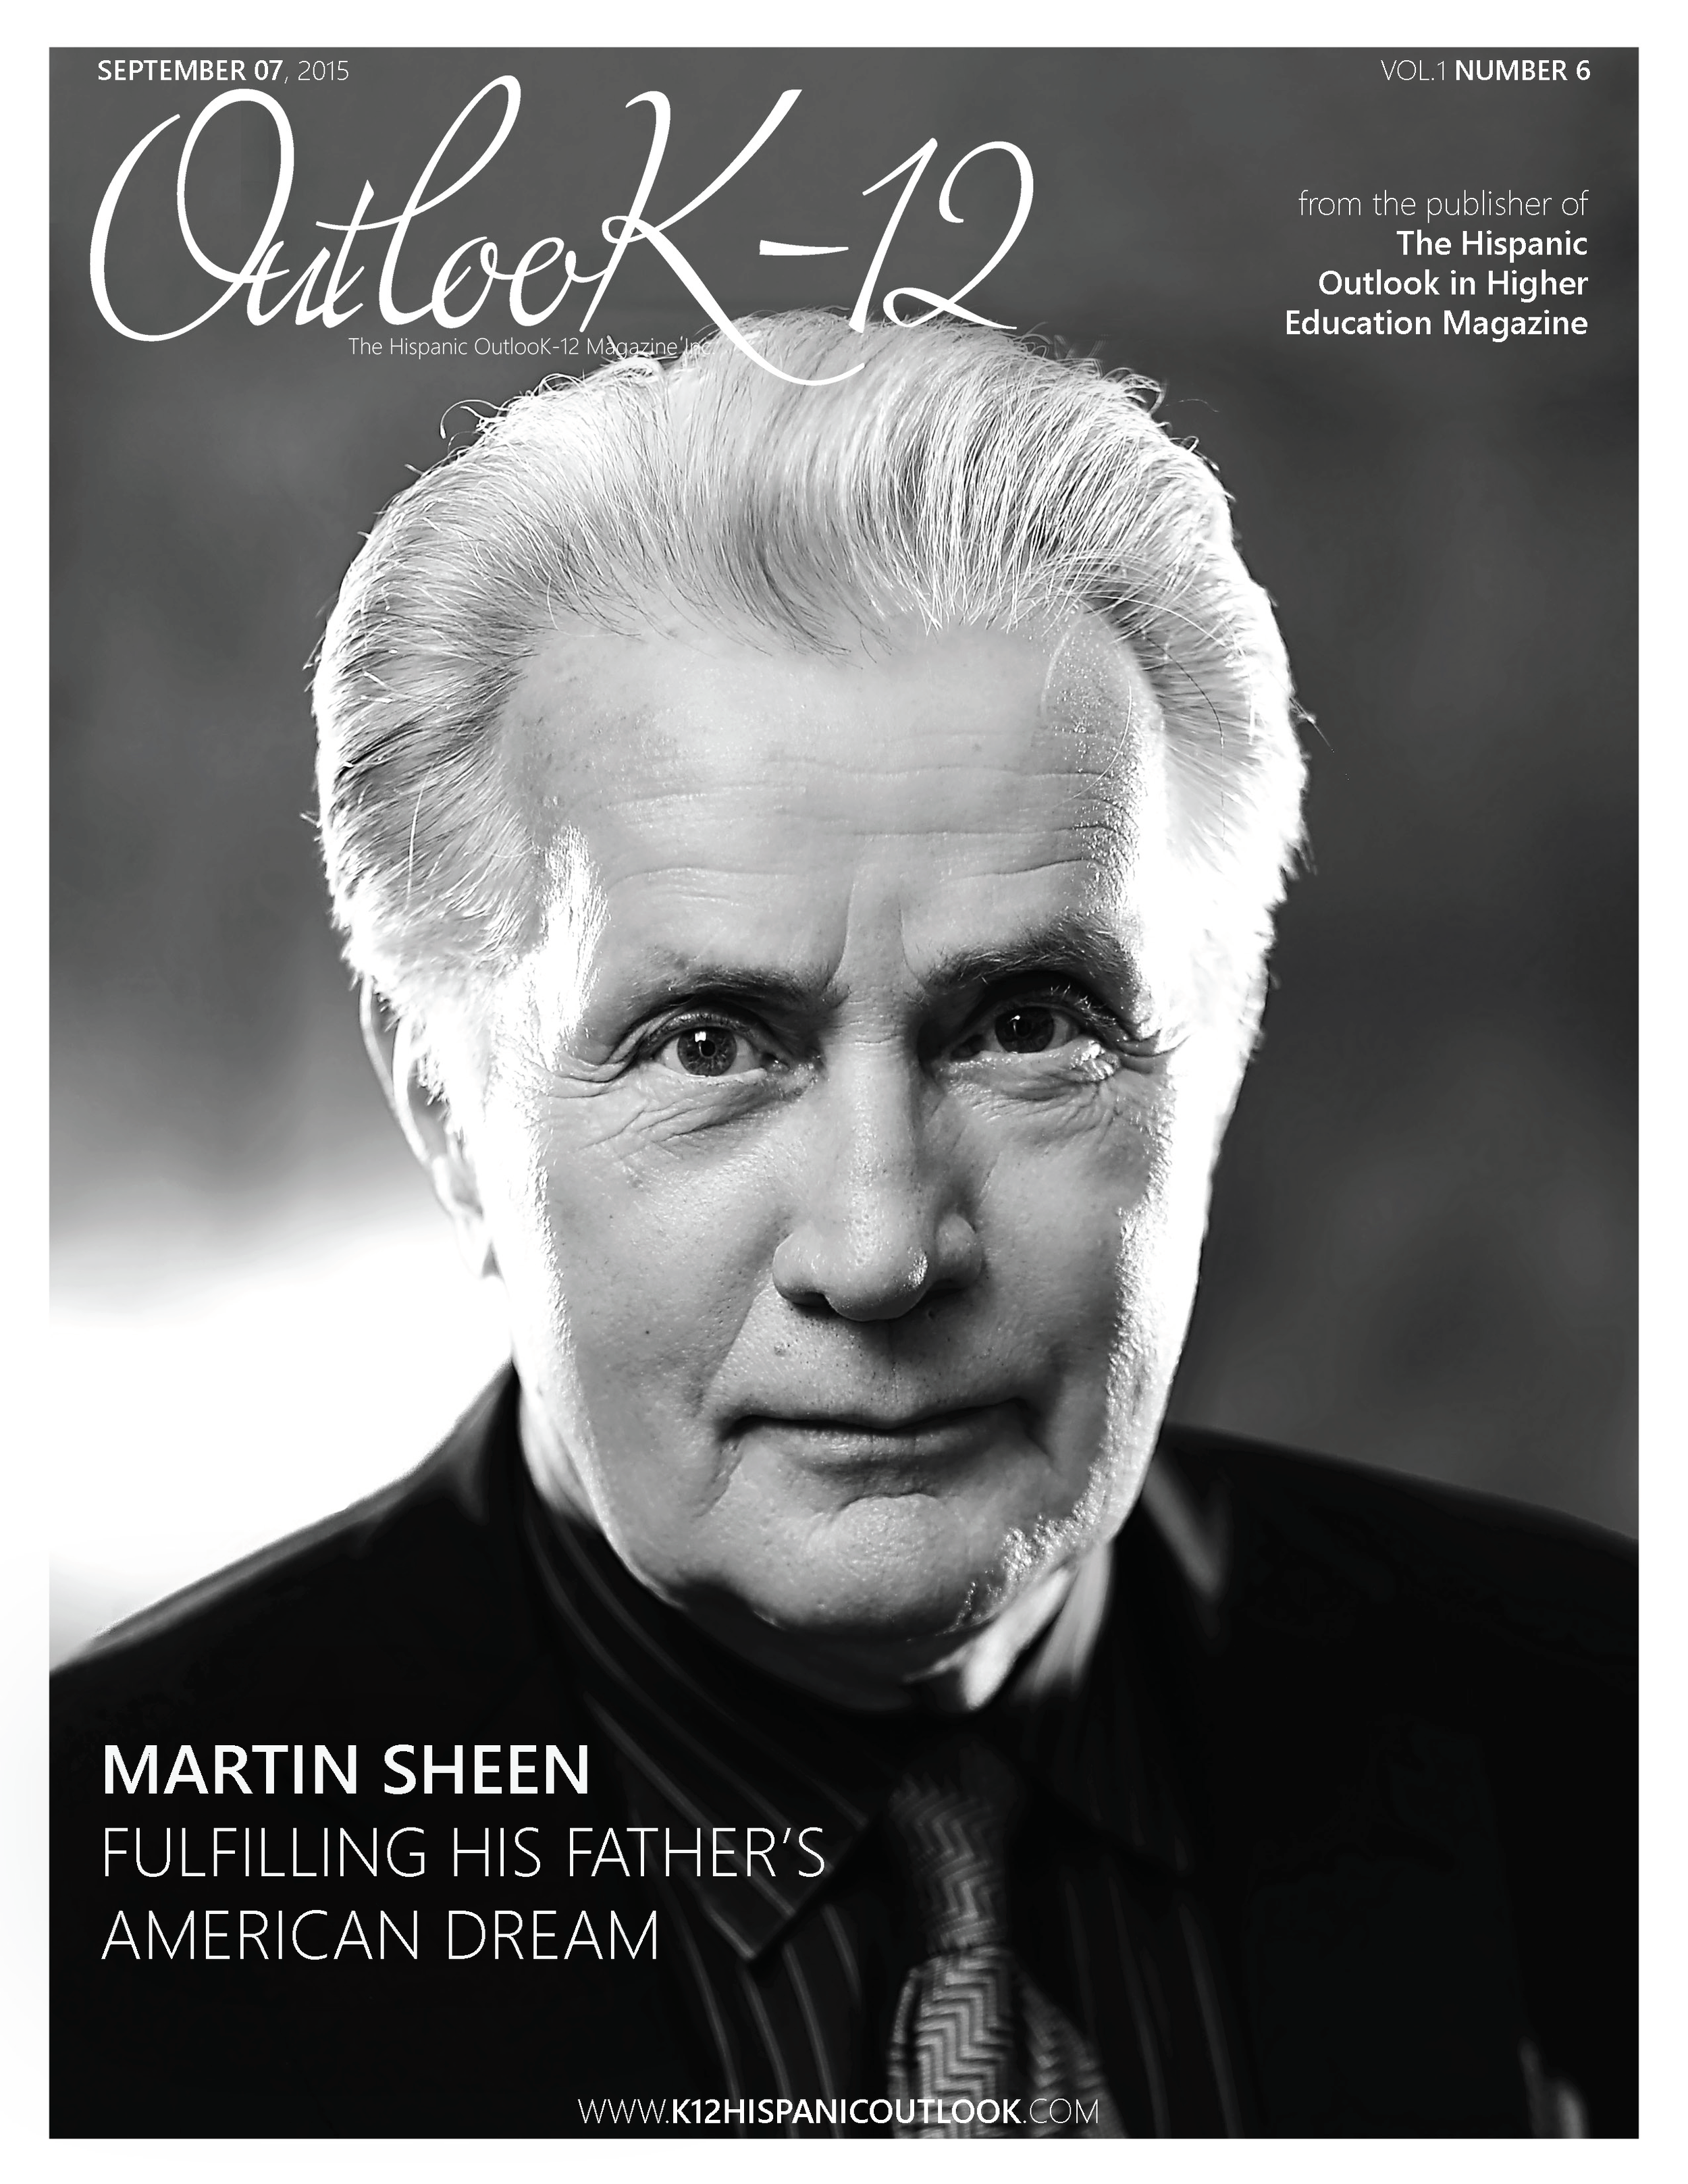 The Hispanic OutlooK-12 Magazine Martin Sheen